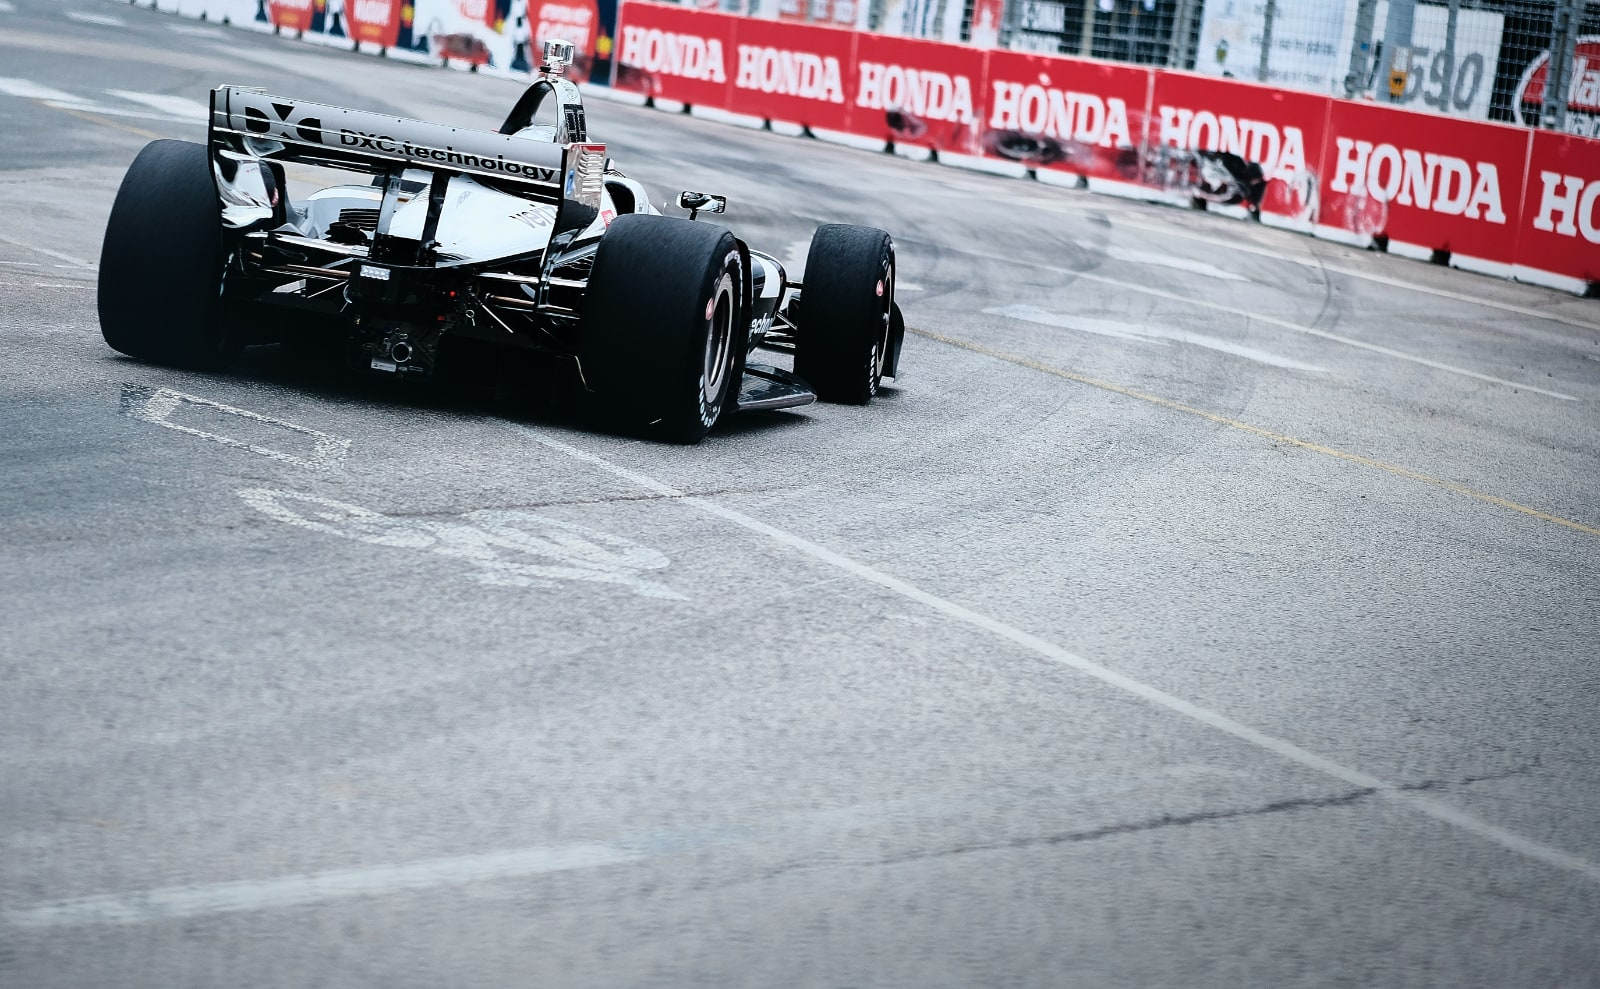 Simon Pagenaud apexes Toronto Indy turn